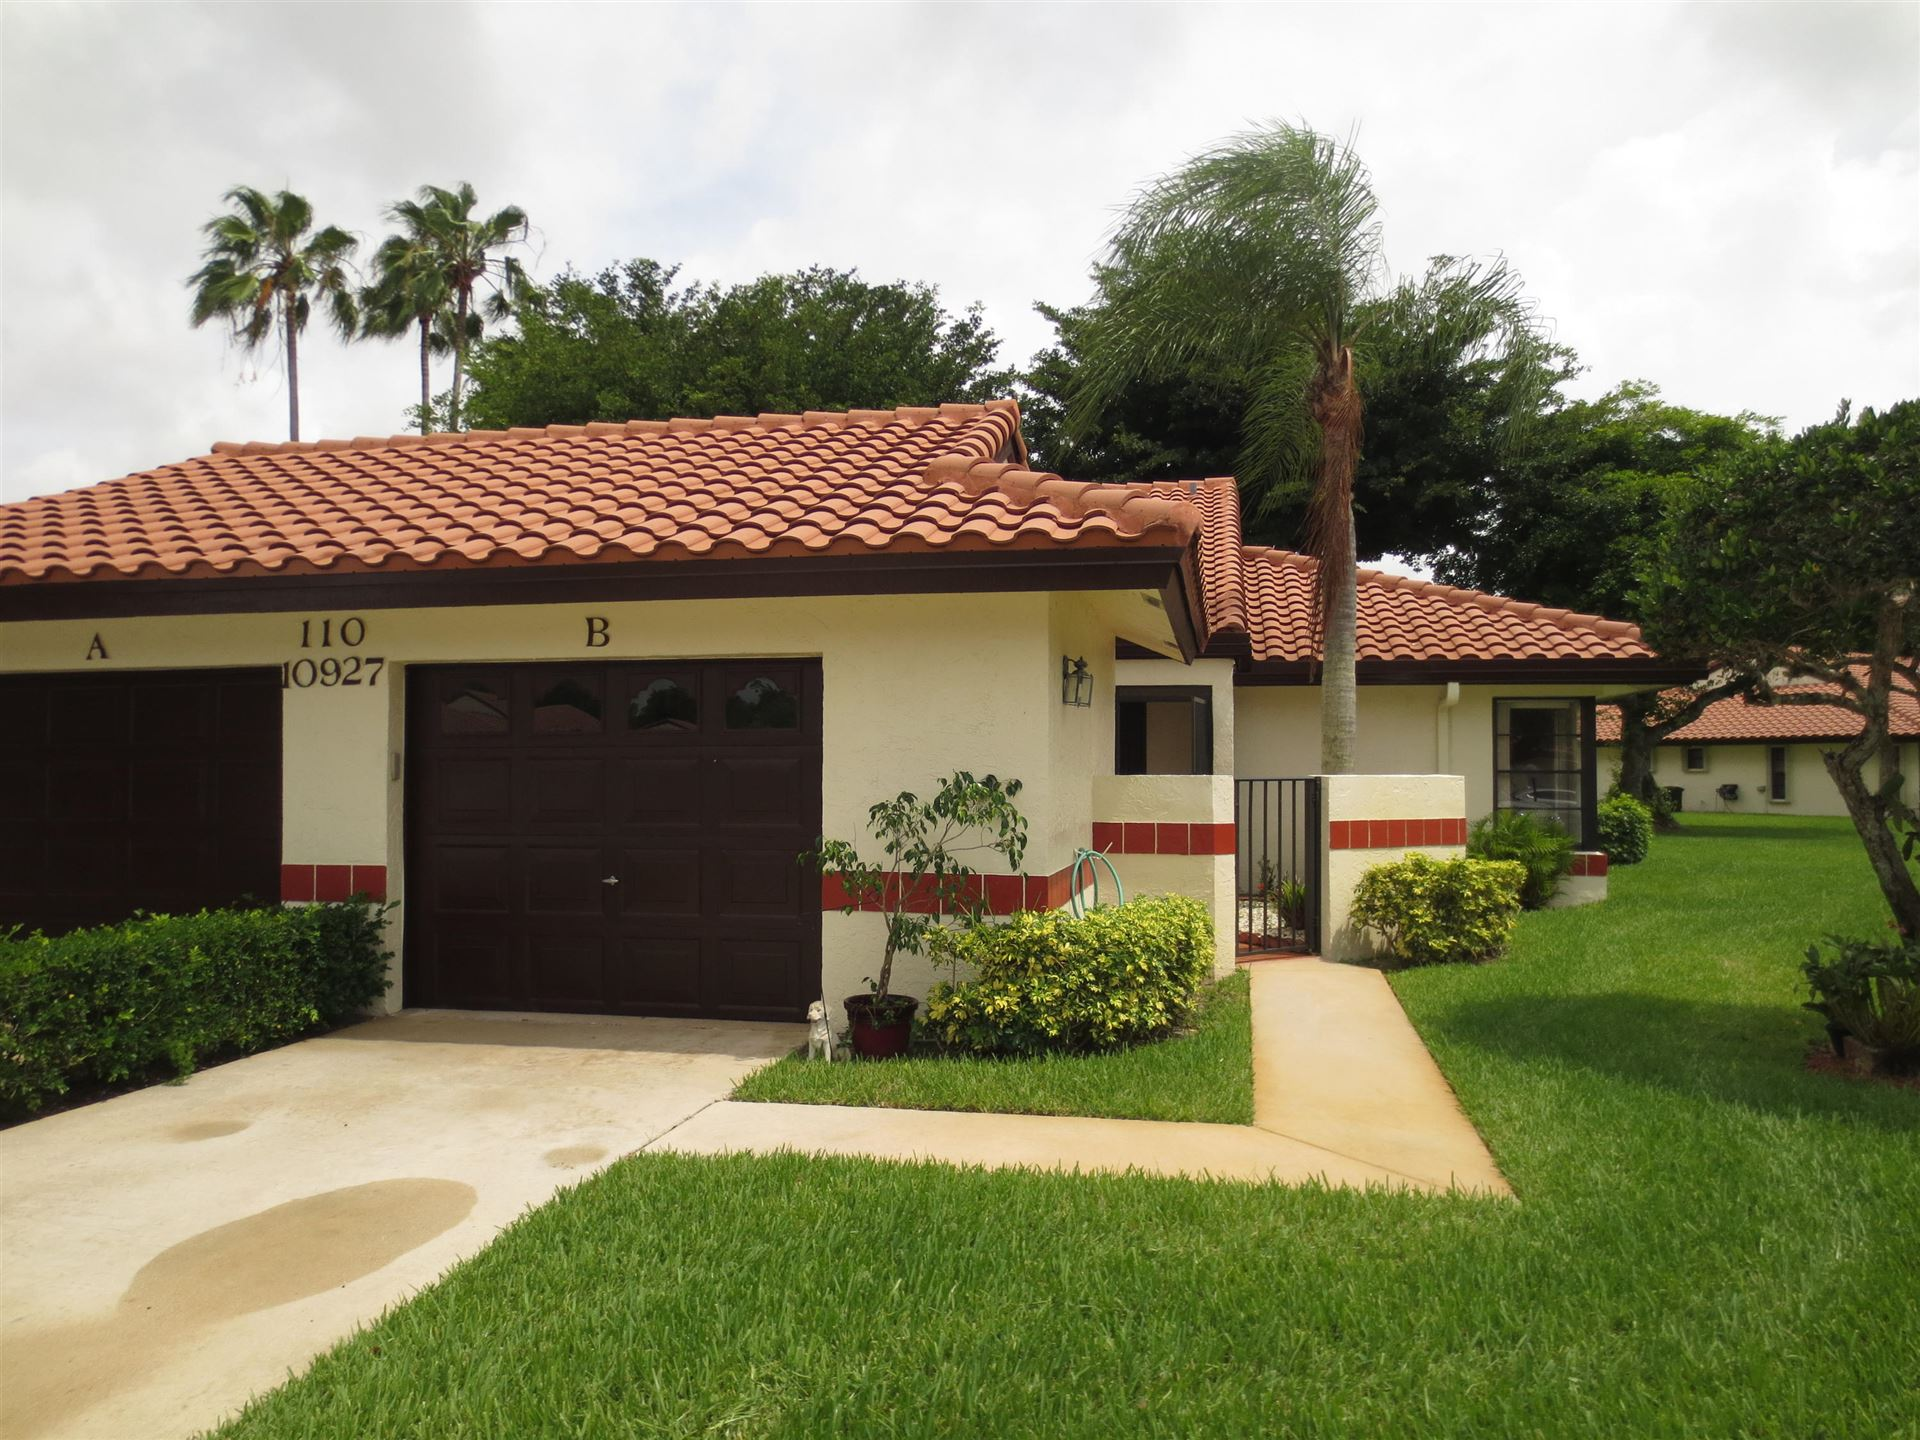 10927 Dolphin Palm Court #B, Boynton Beach, FL 33437 - #: RX-10610814